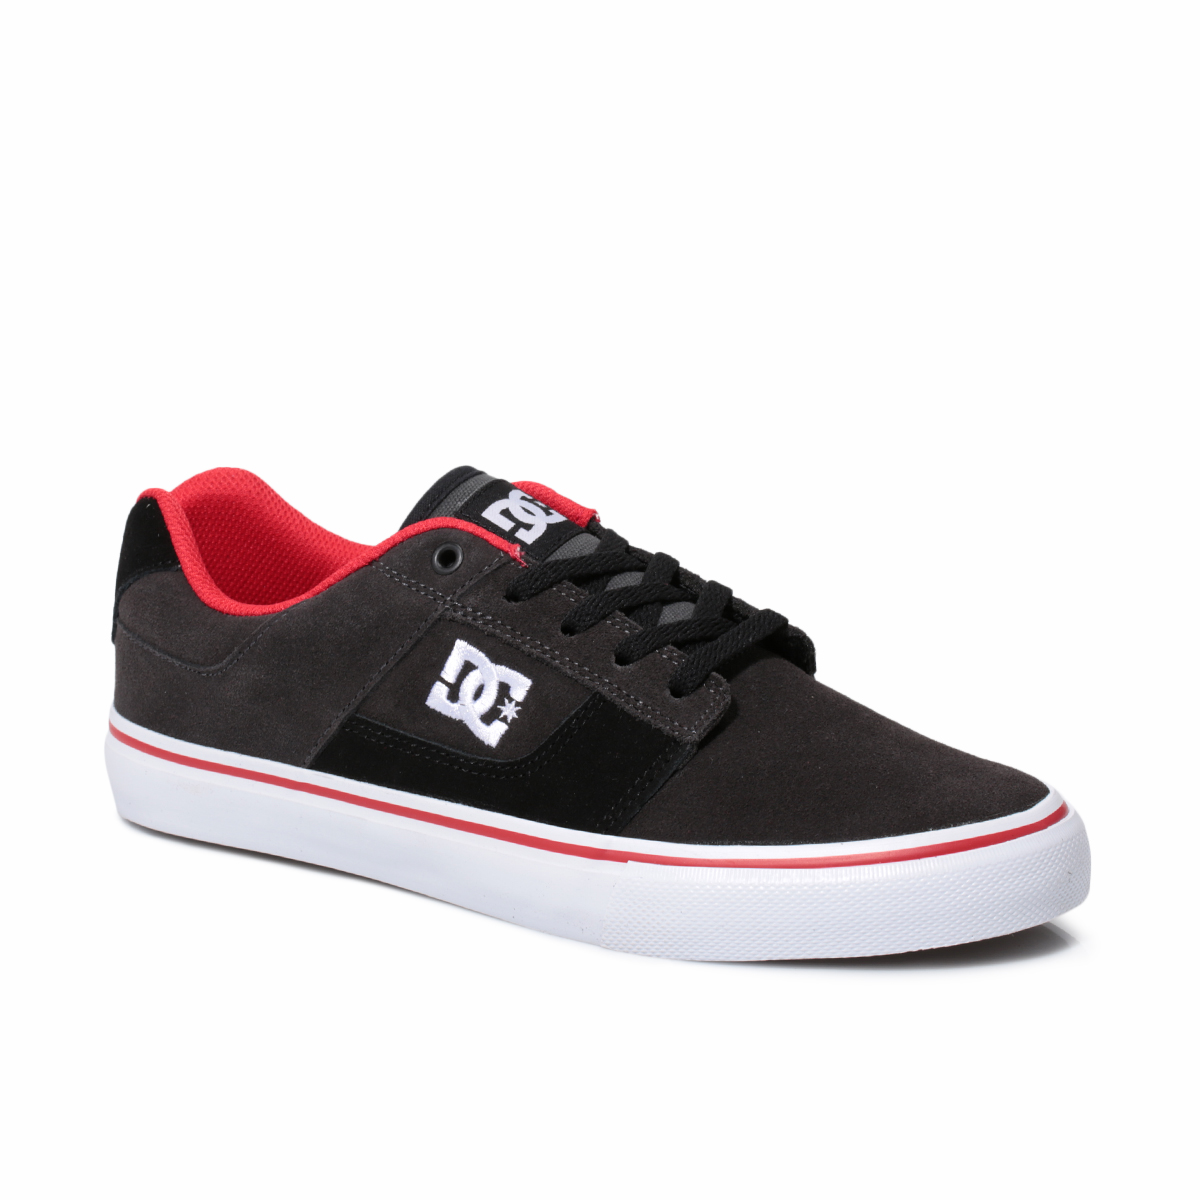 dc shoes high tops red and black. image is loading dc-shoes-bridge-suede-black-red-mens-trainers- dc shoes high tops red and black \